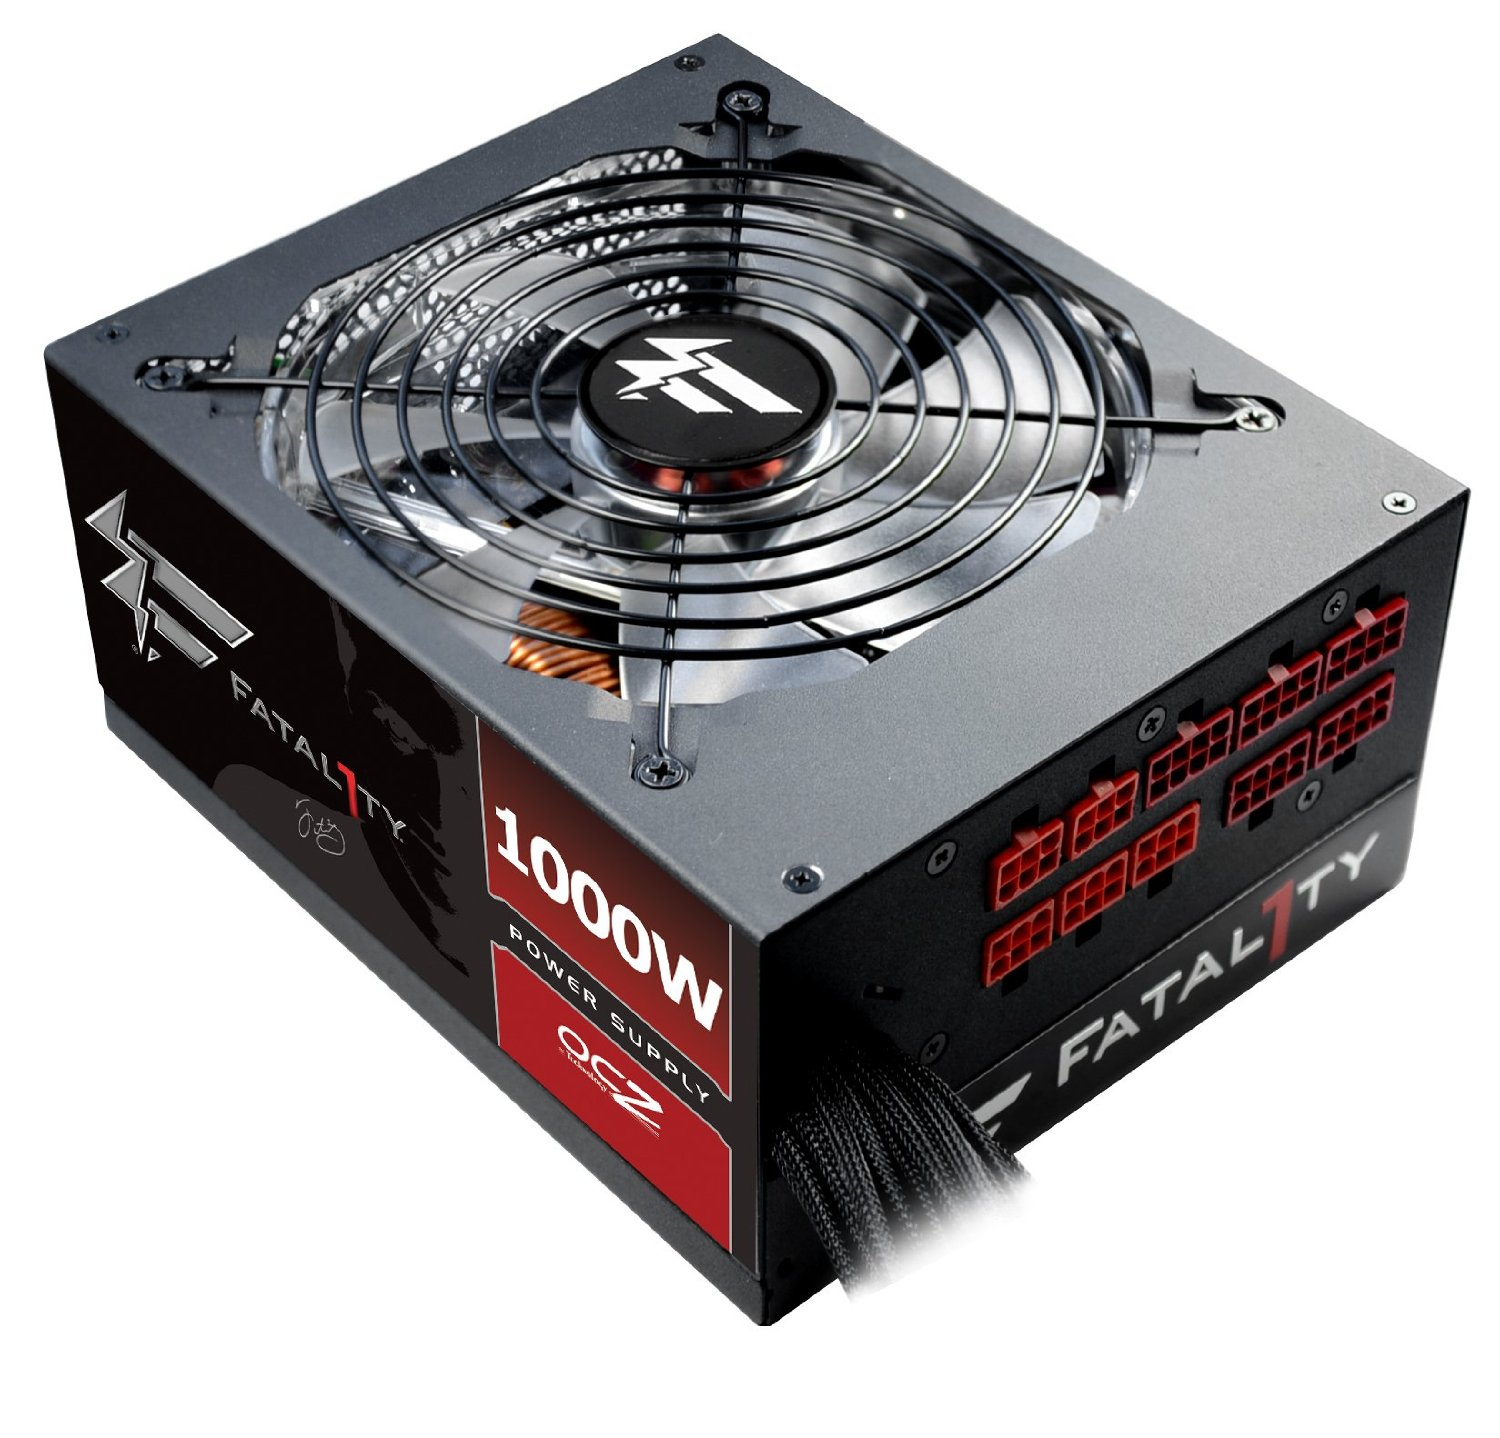 FirePower Fatal1ty 1000W 80Plus Gold Individually-Sleeved Semi-Modular Gaming ATX PC Power Supply FTY1000W, formerly PC